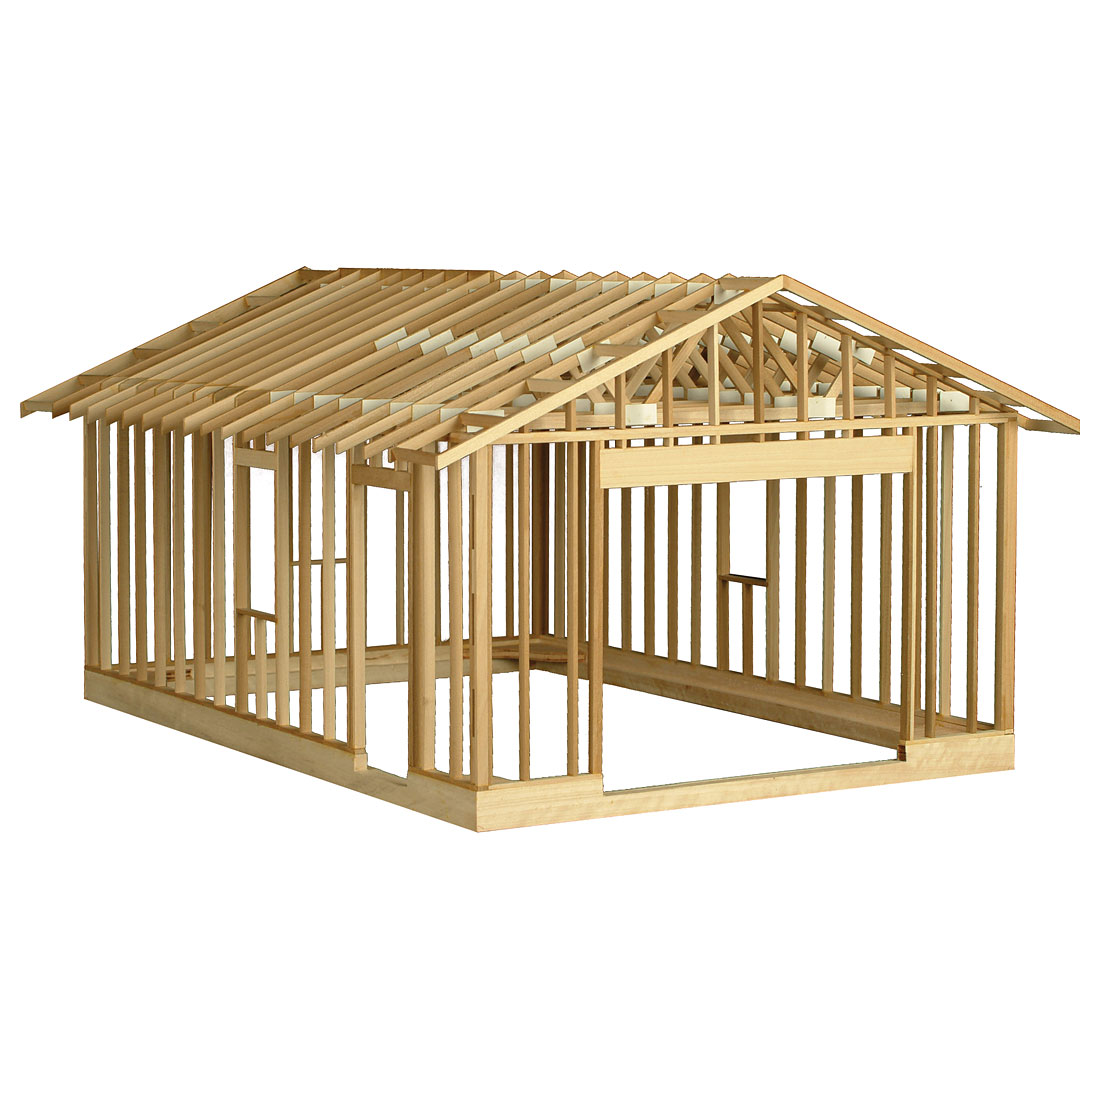 Garage framing kit 201 w31574 for Frame plan